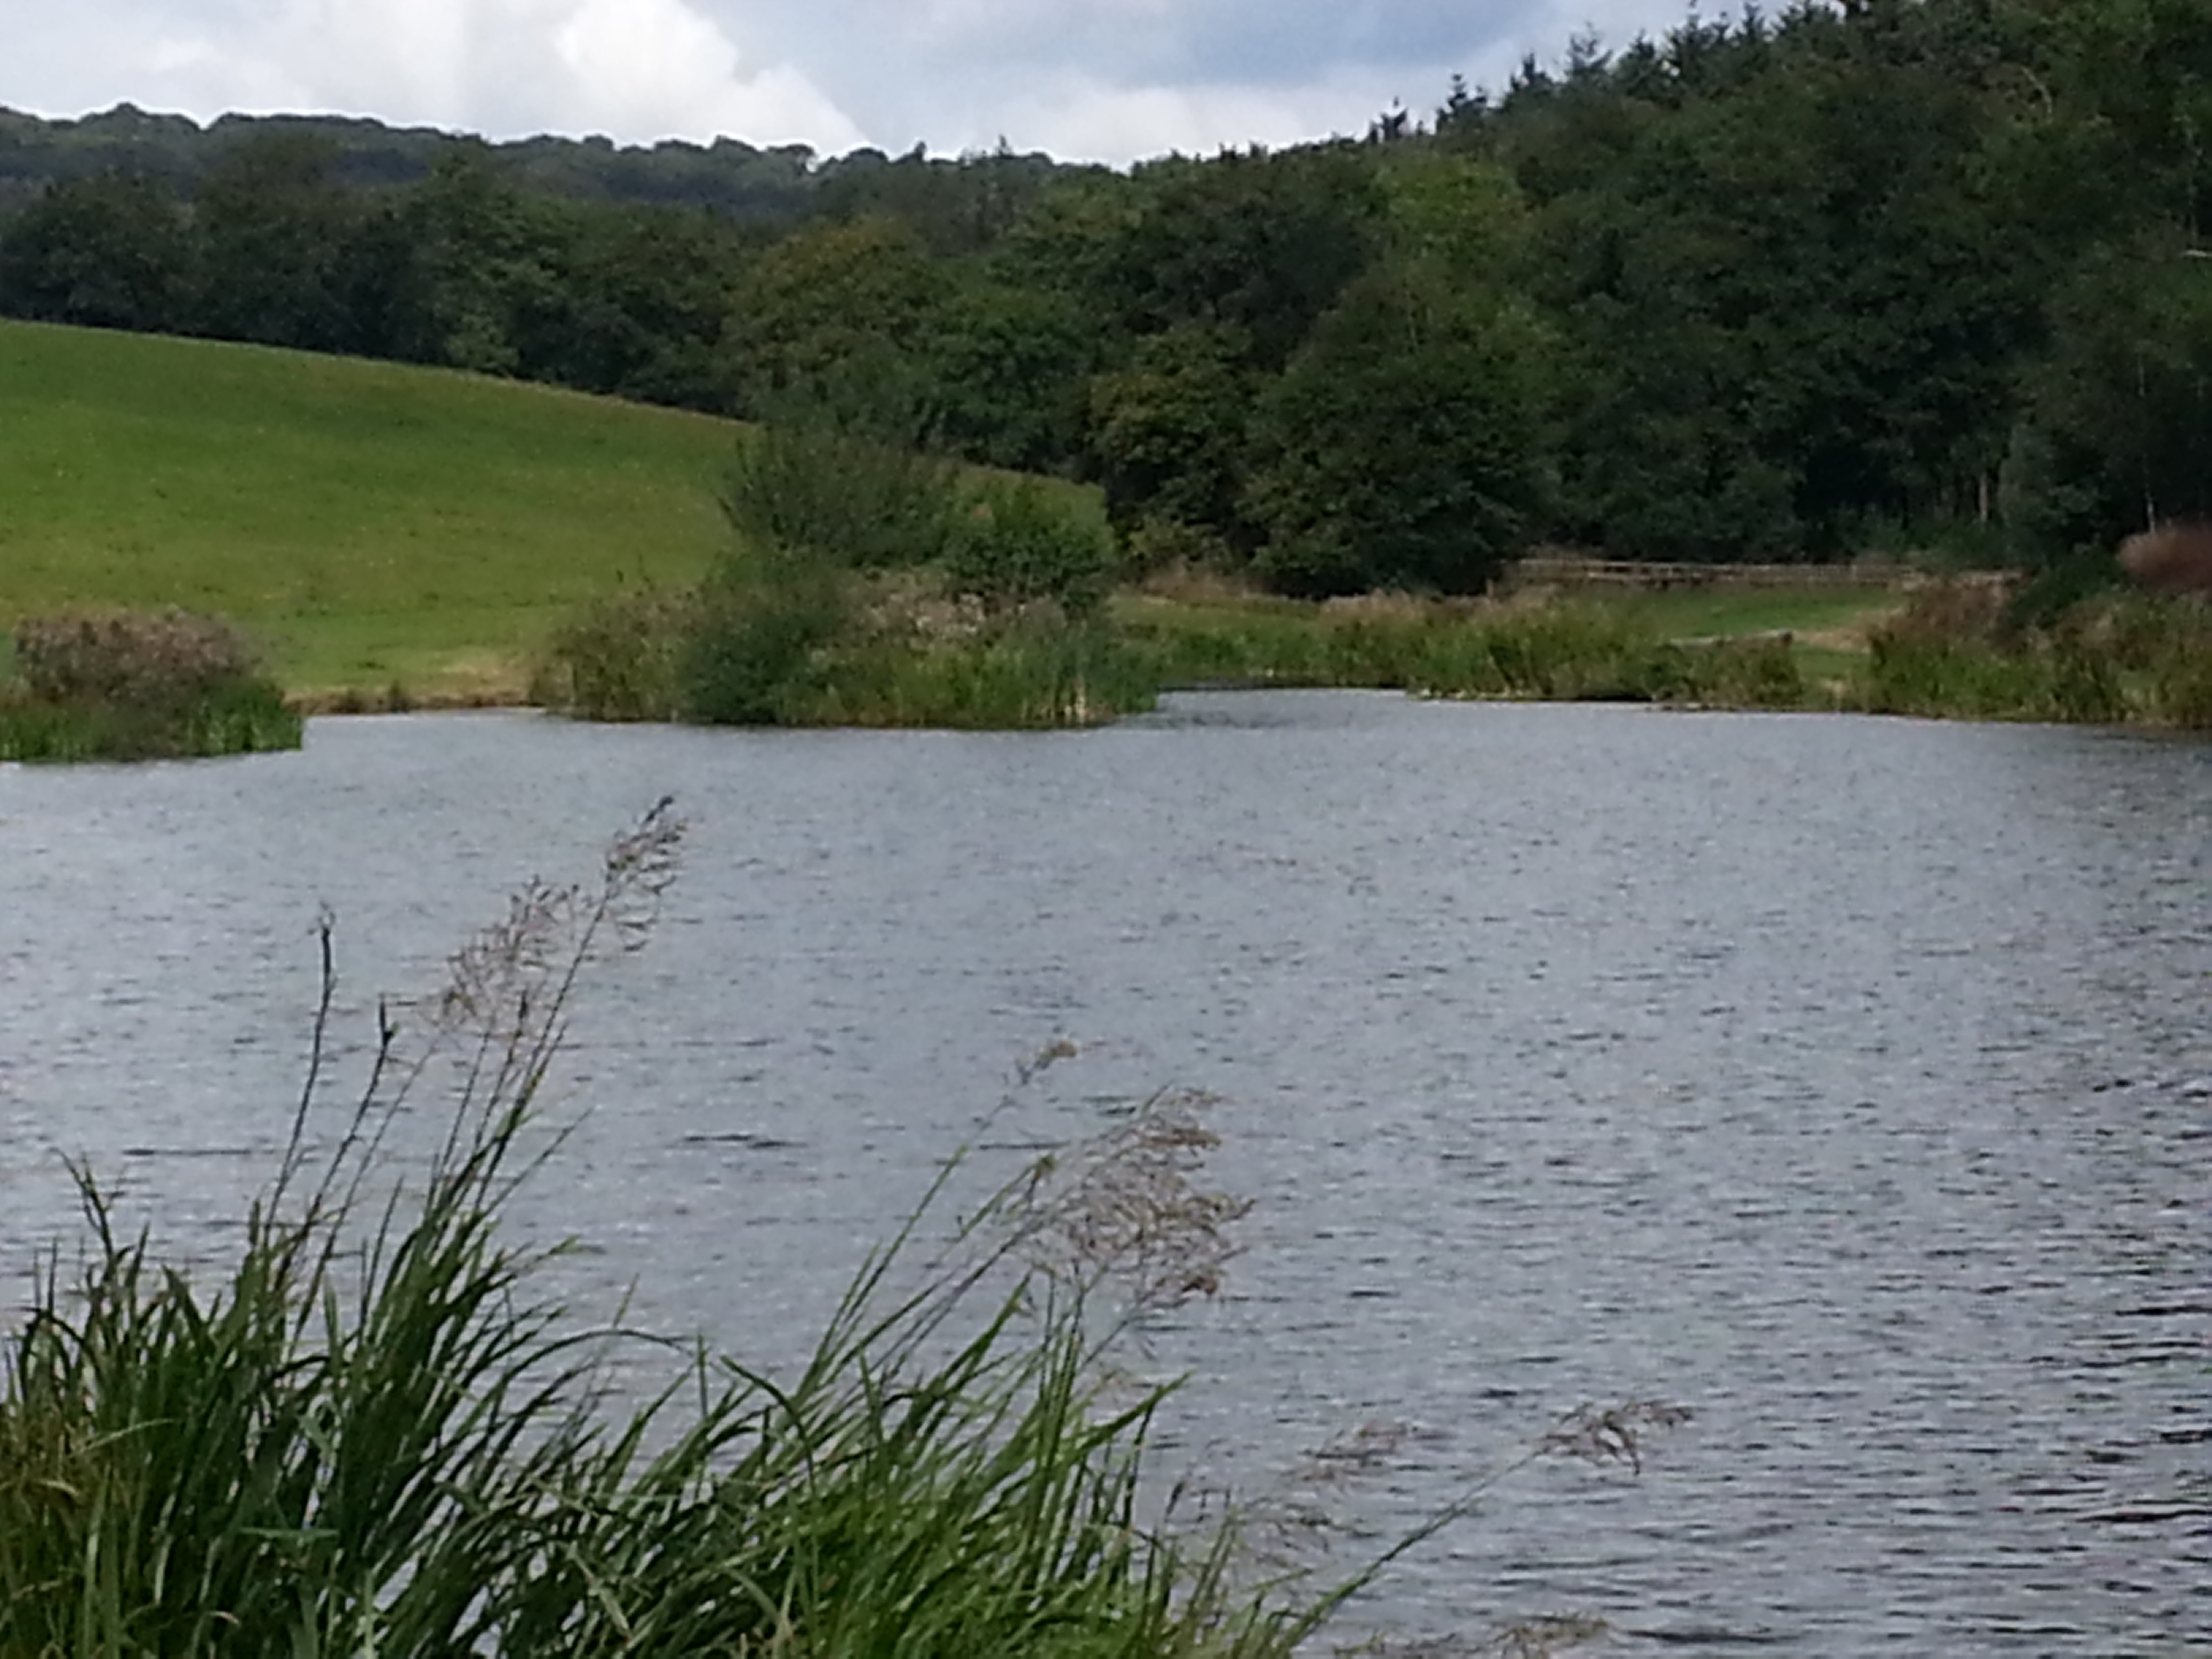 Lydney United Kingdom  City pictures : Beanhill Trout Lake Fishery, Lydney, United Kingdom Fish Around